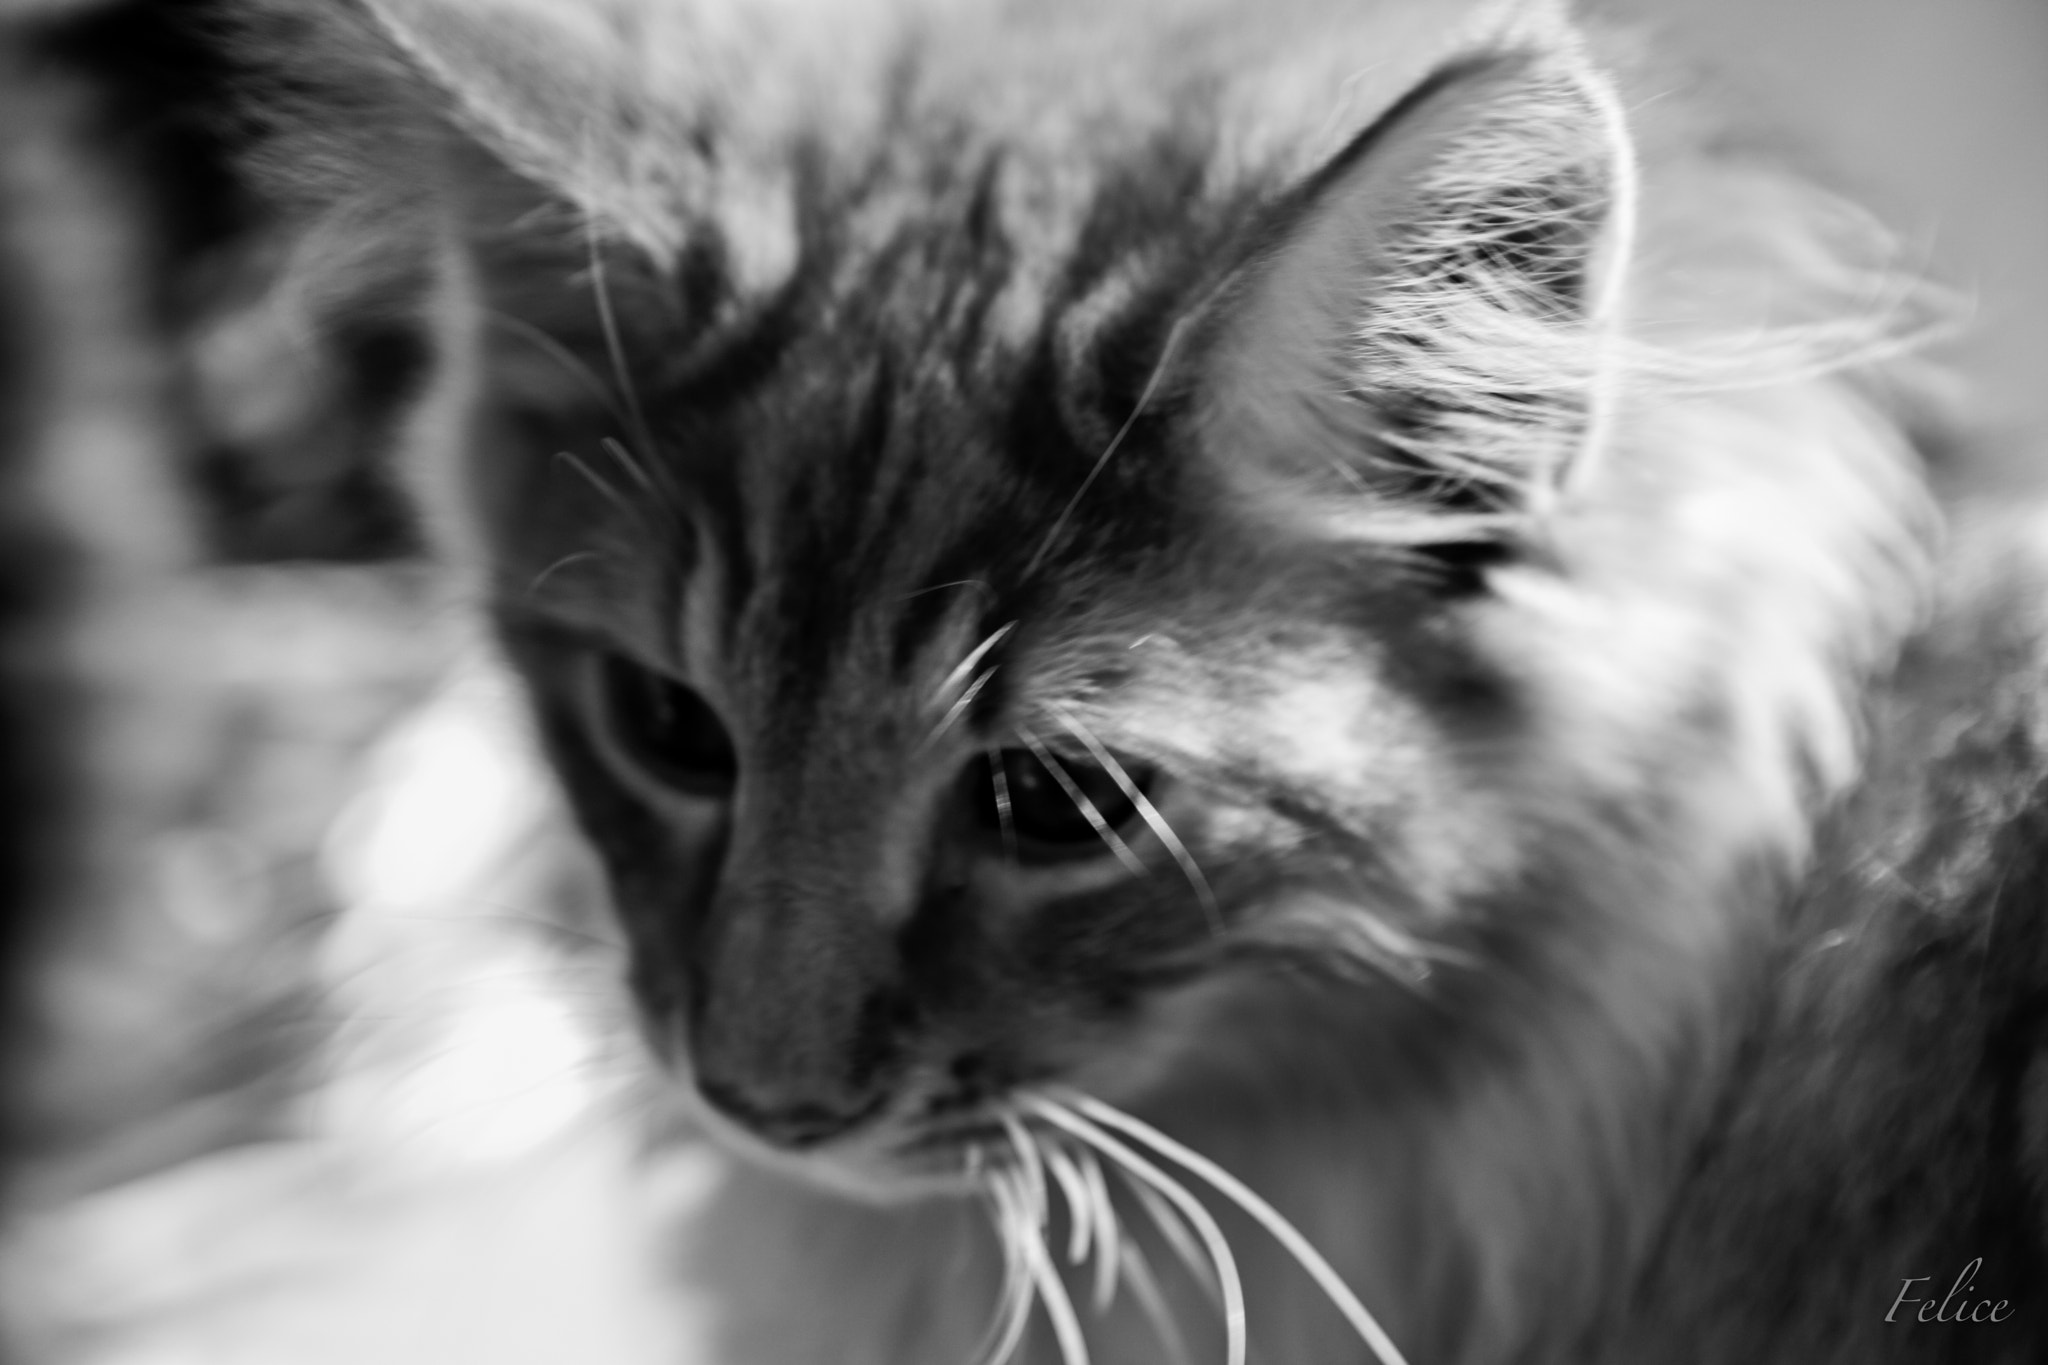 Photograph Cat by Felice V. on 500px